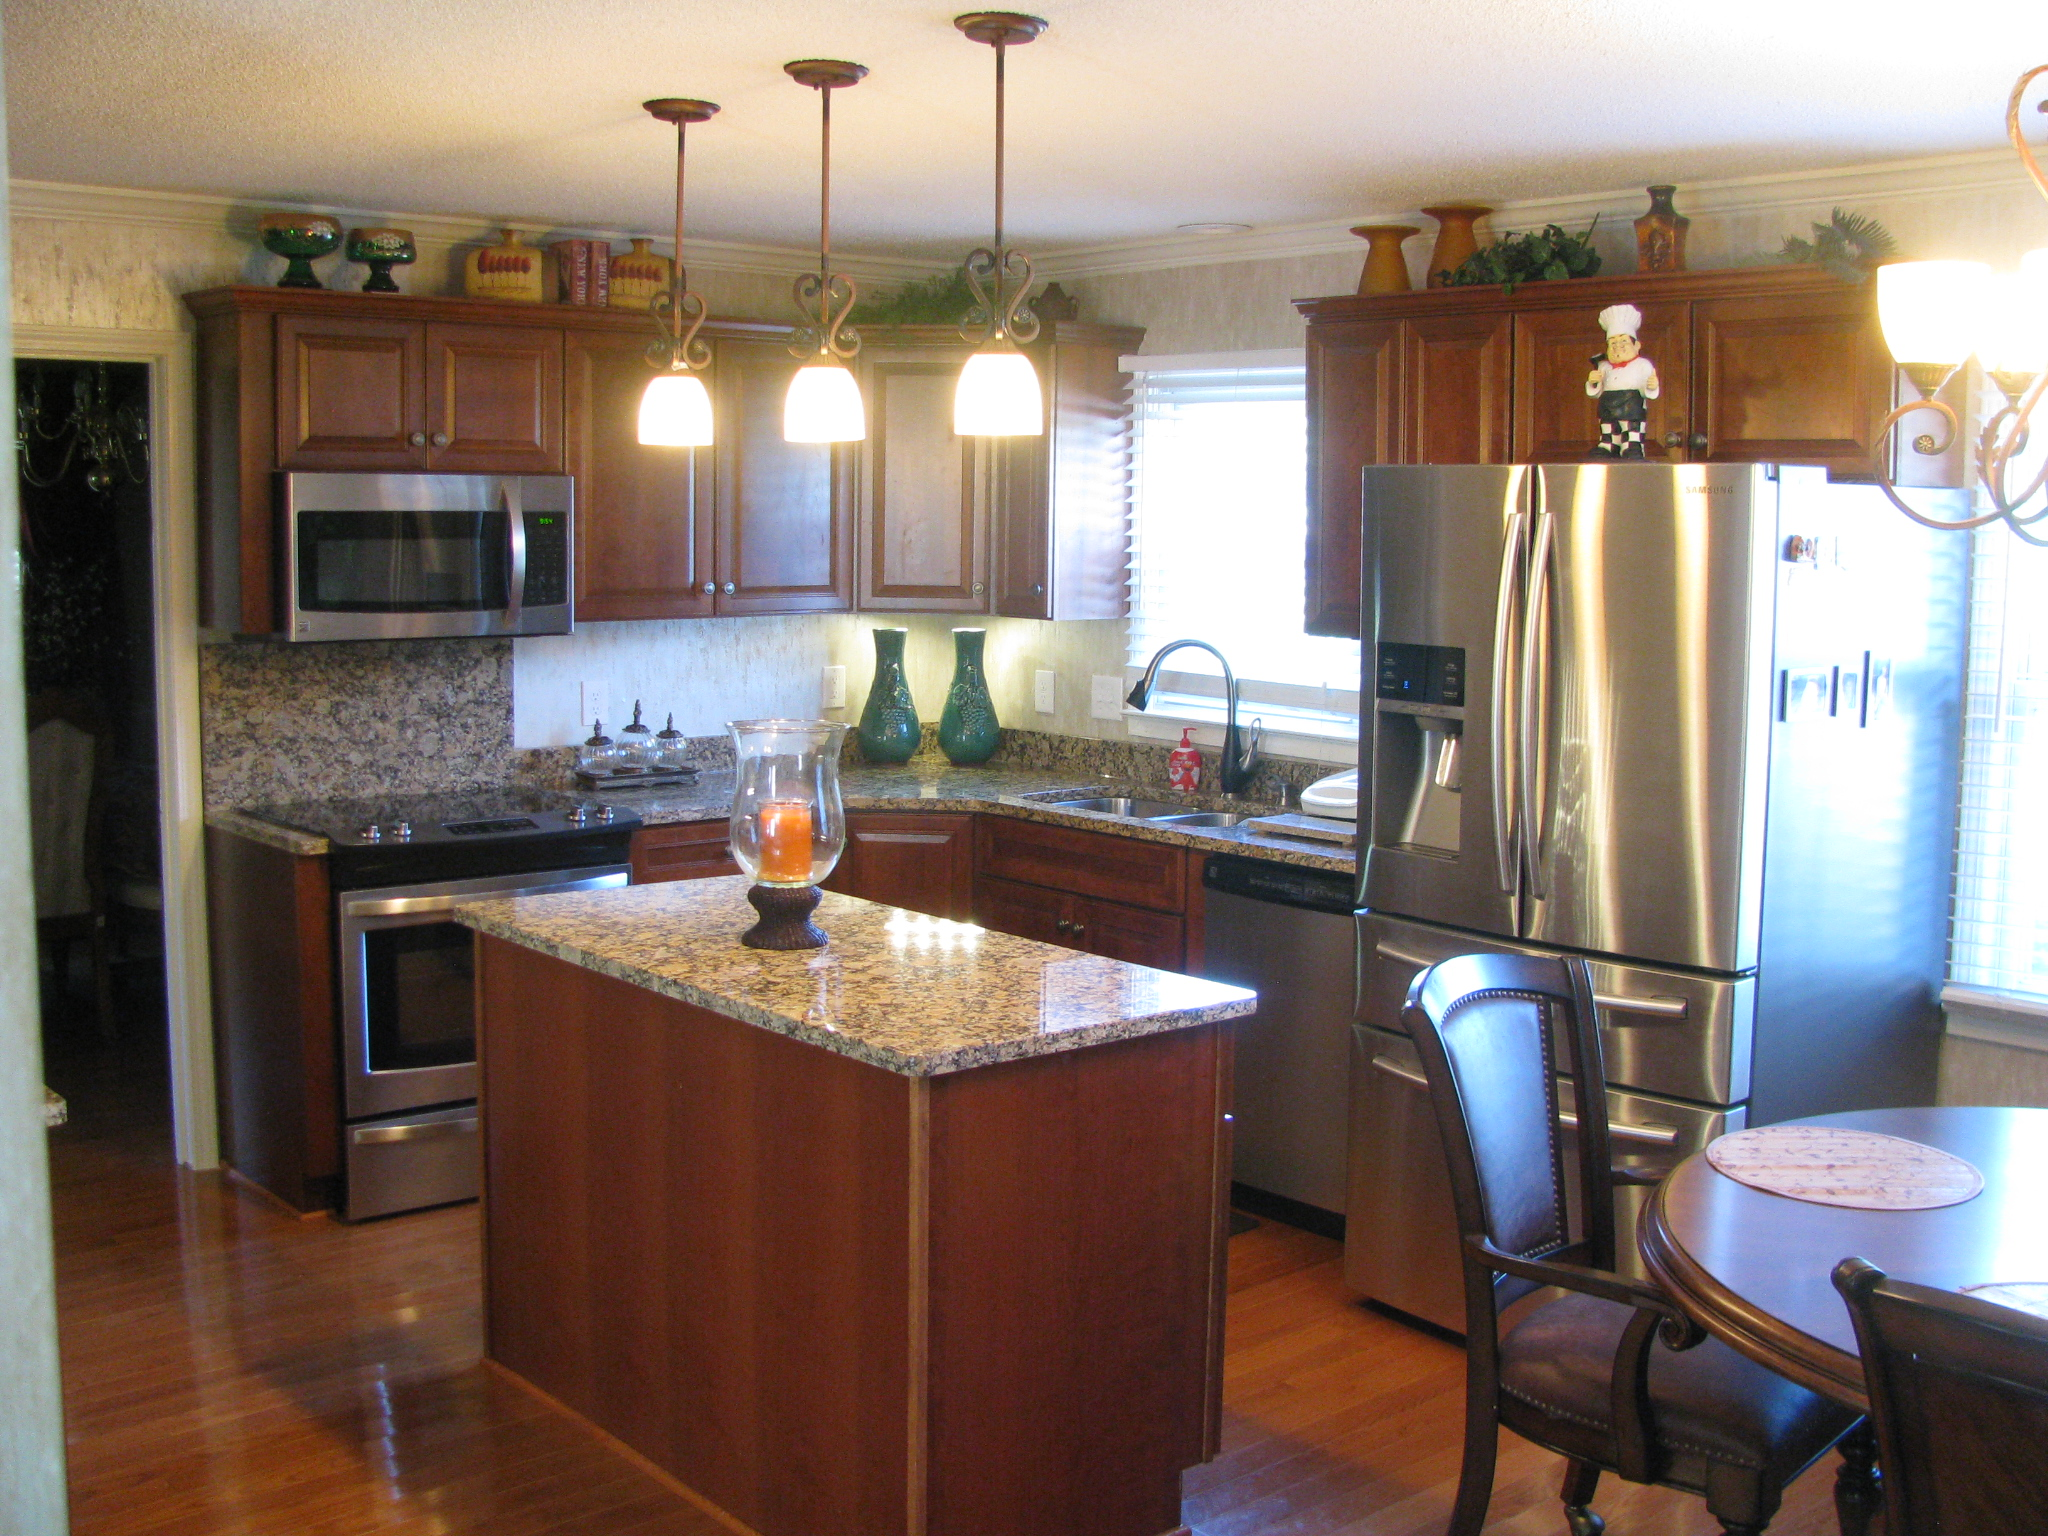 this greenville kitchen remodel changed what was a u shaped kitchen that did not work for this family to one with a center island and better traffic flow - U Shaped Kitchen Remodel